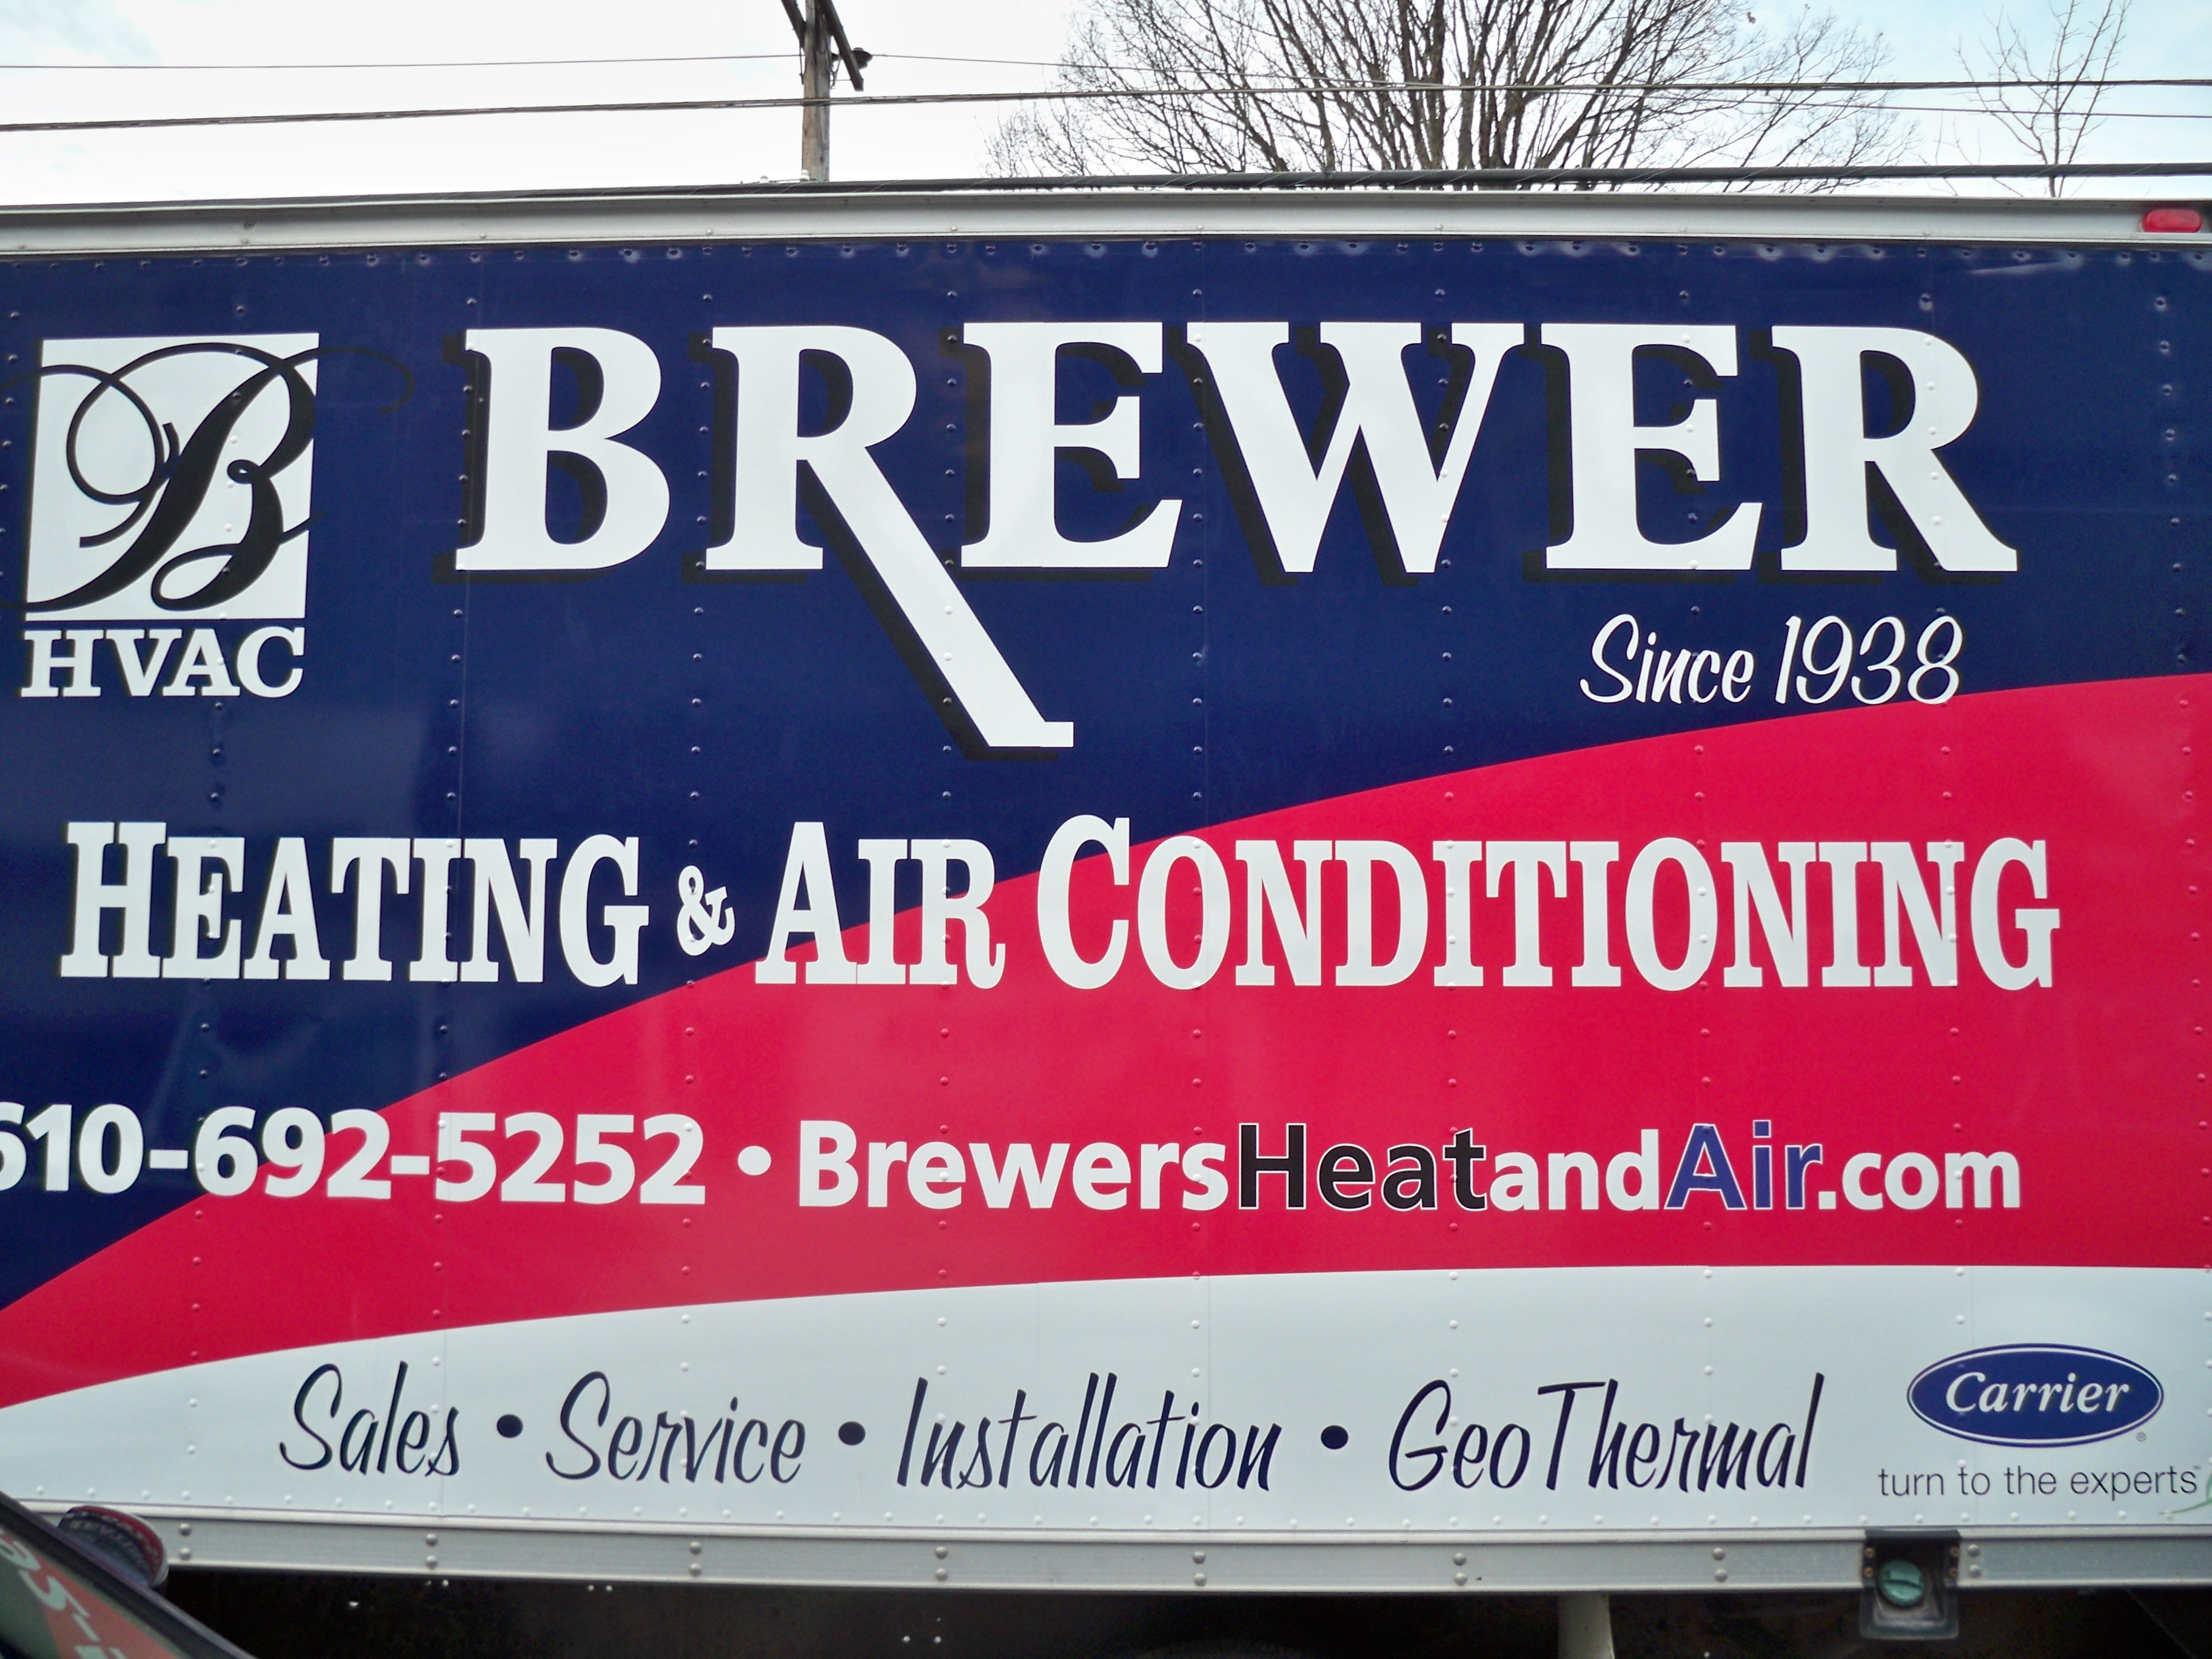 Brewer Heating & Air Conditioning logo